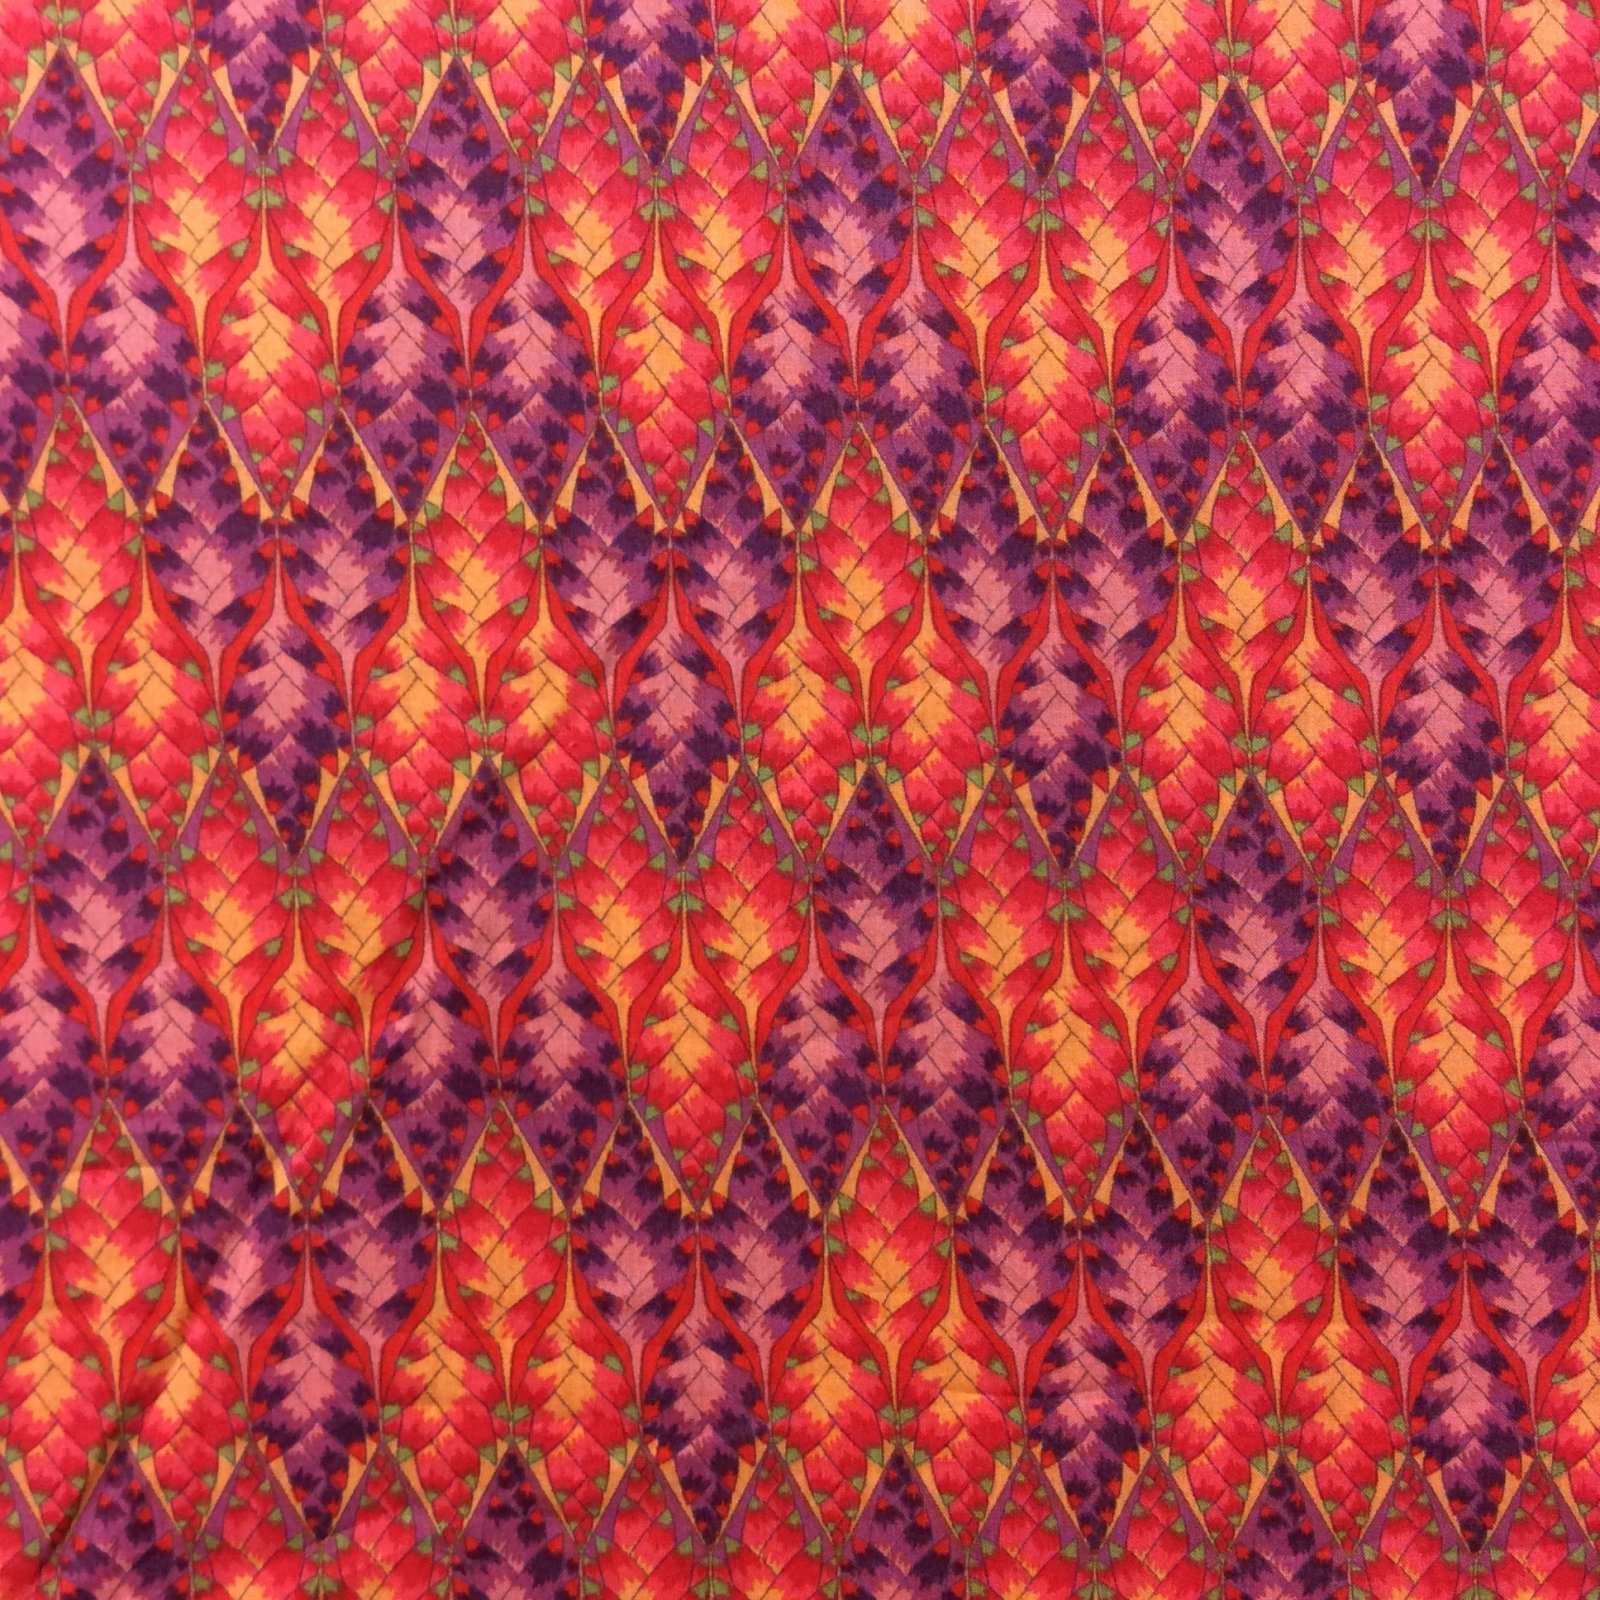 Liberty of London pink and purple Cotton Apparel Lawn Fabric Fashion Fabric LL01